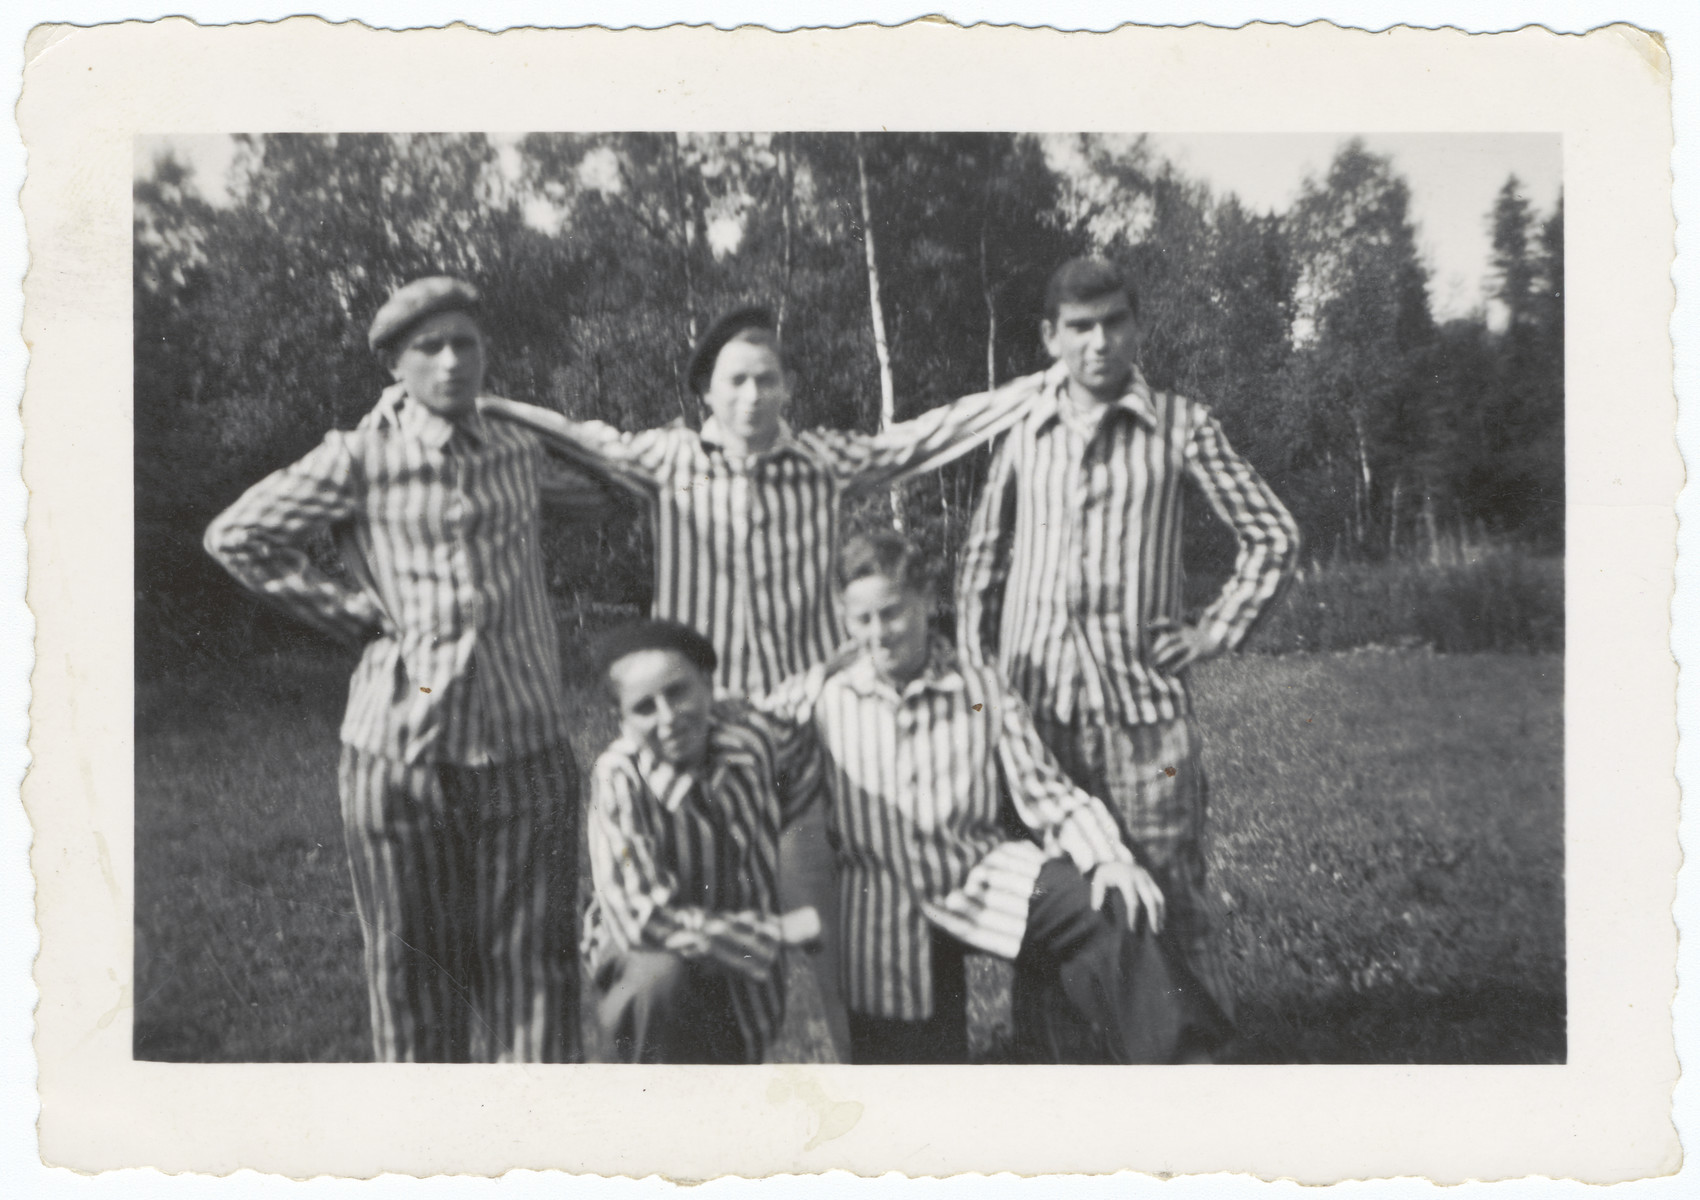 Portrait of five young survivors of the Buchenwald concentration camp in their uniforms.